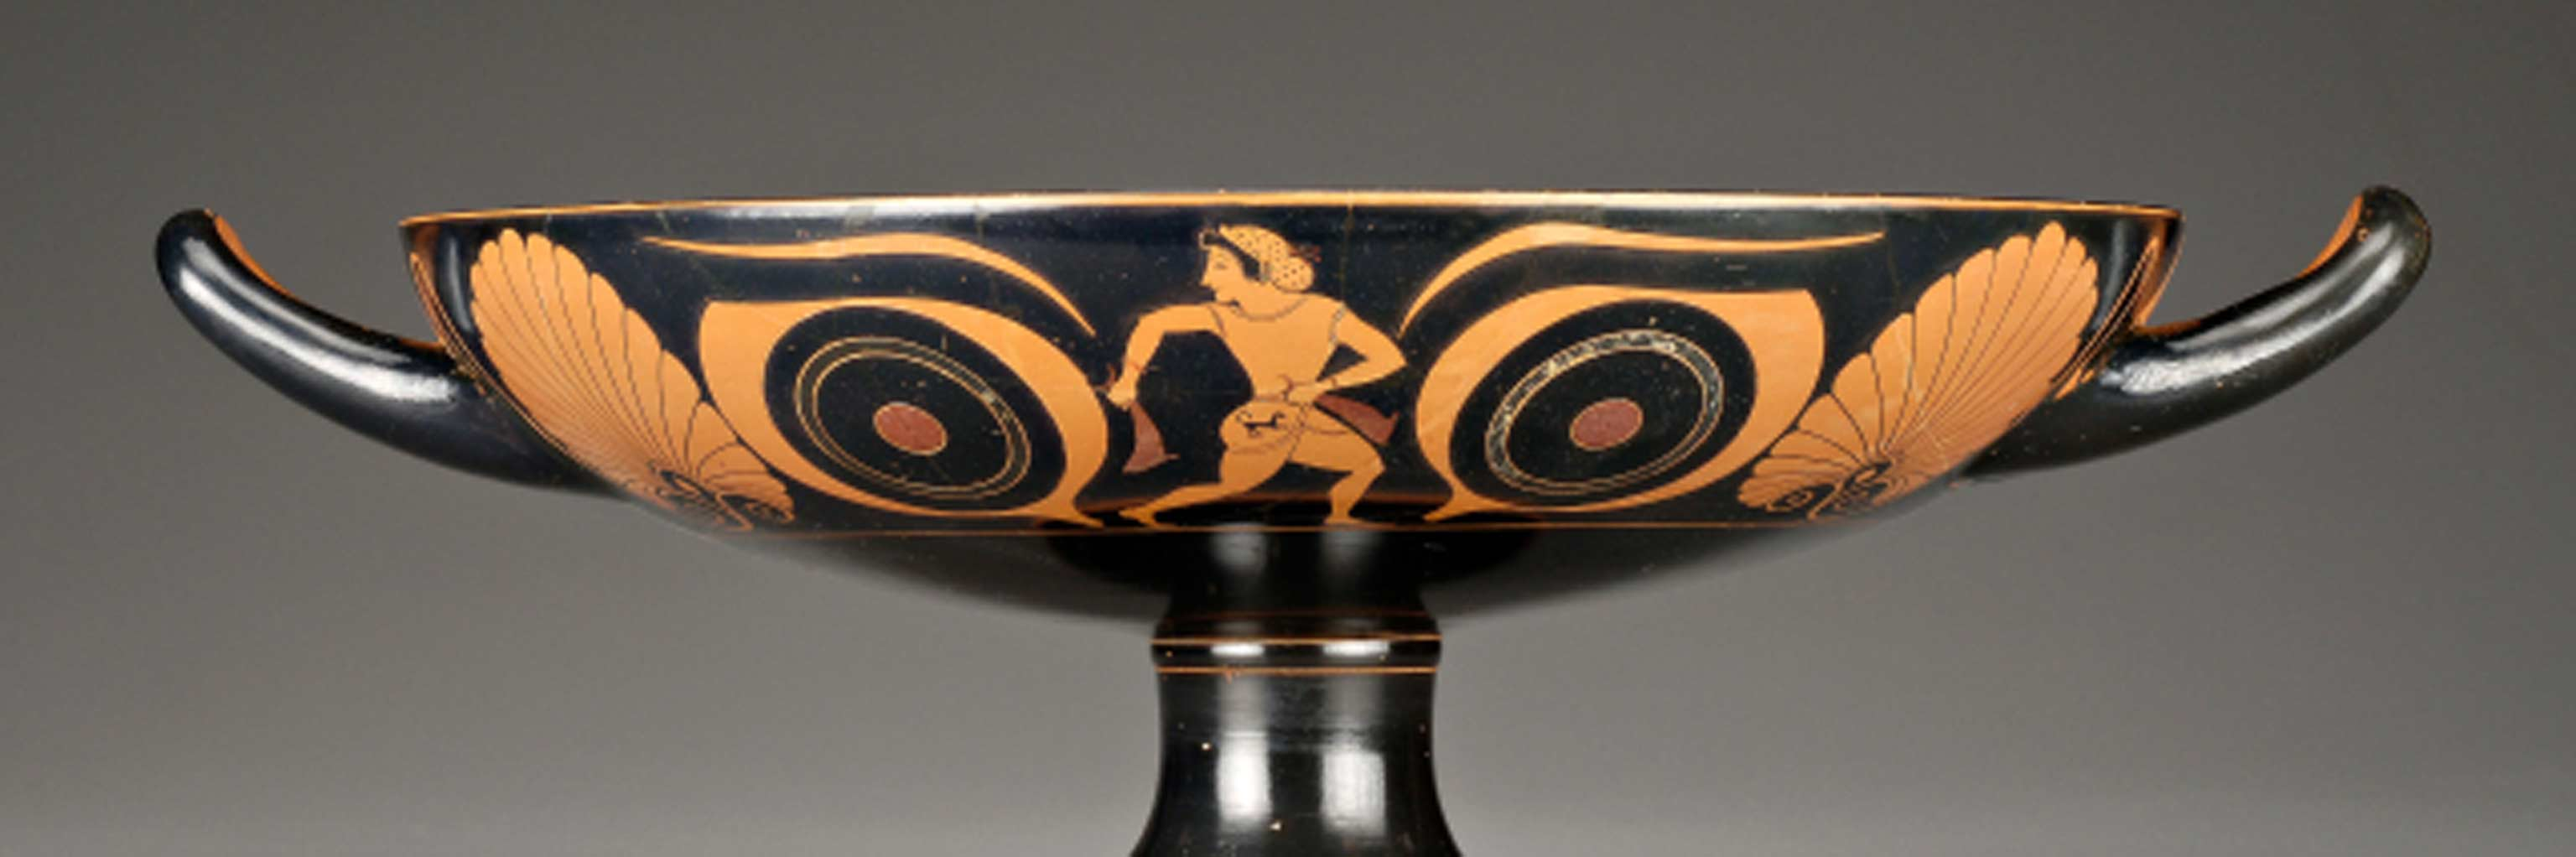 Ancient Greek pot painted with a man centered between two large eyes.